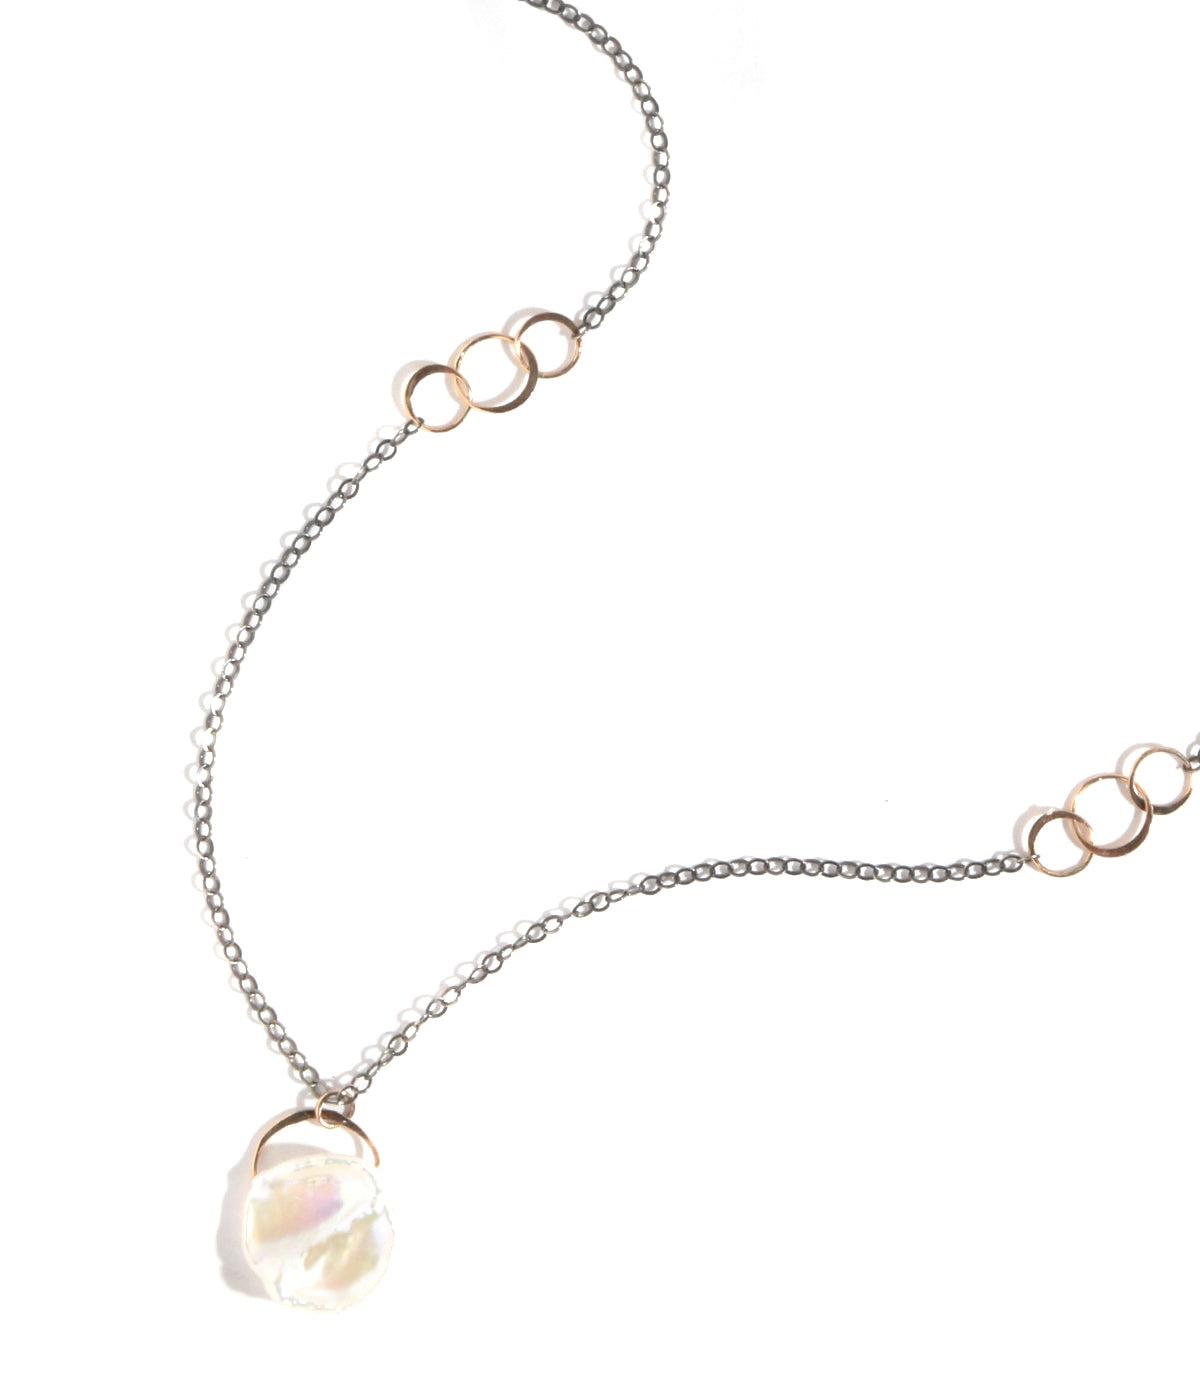 Pearl single drop necklace - Melissa Joy Manning Jewelry